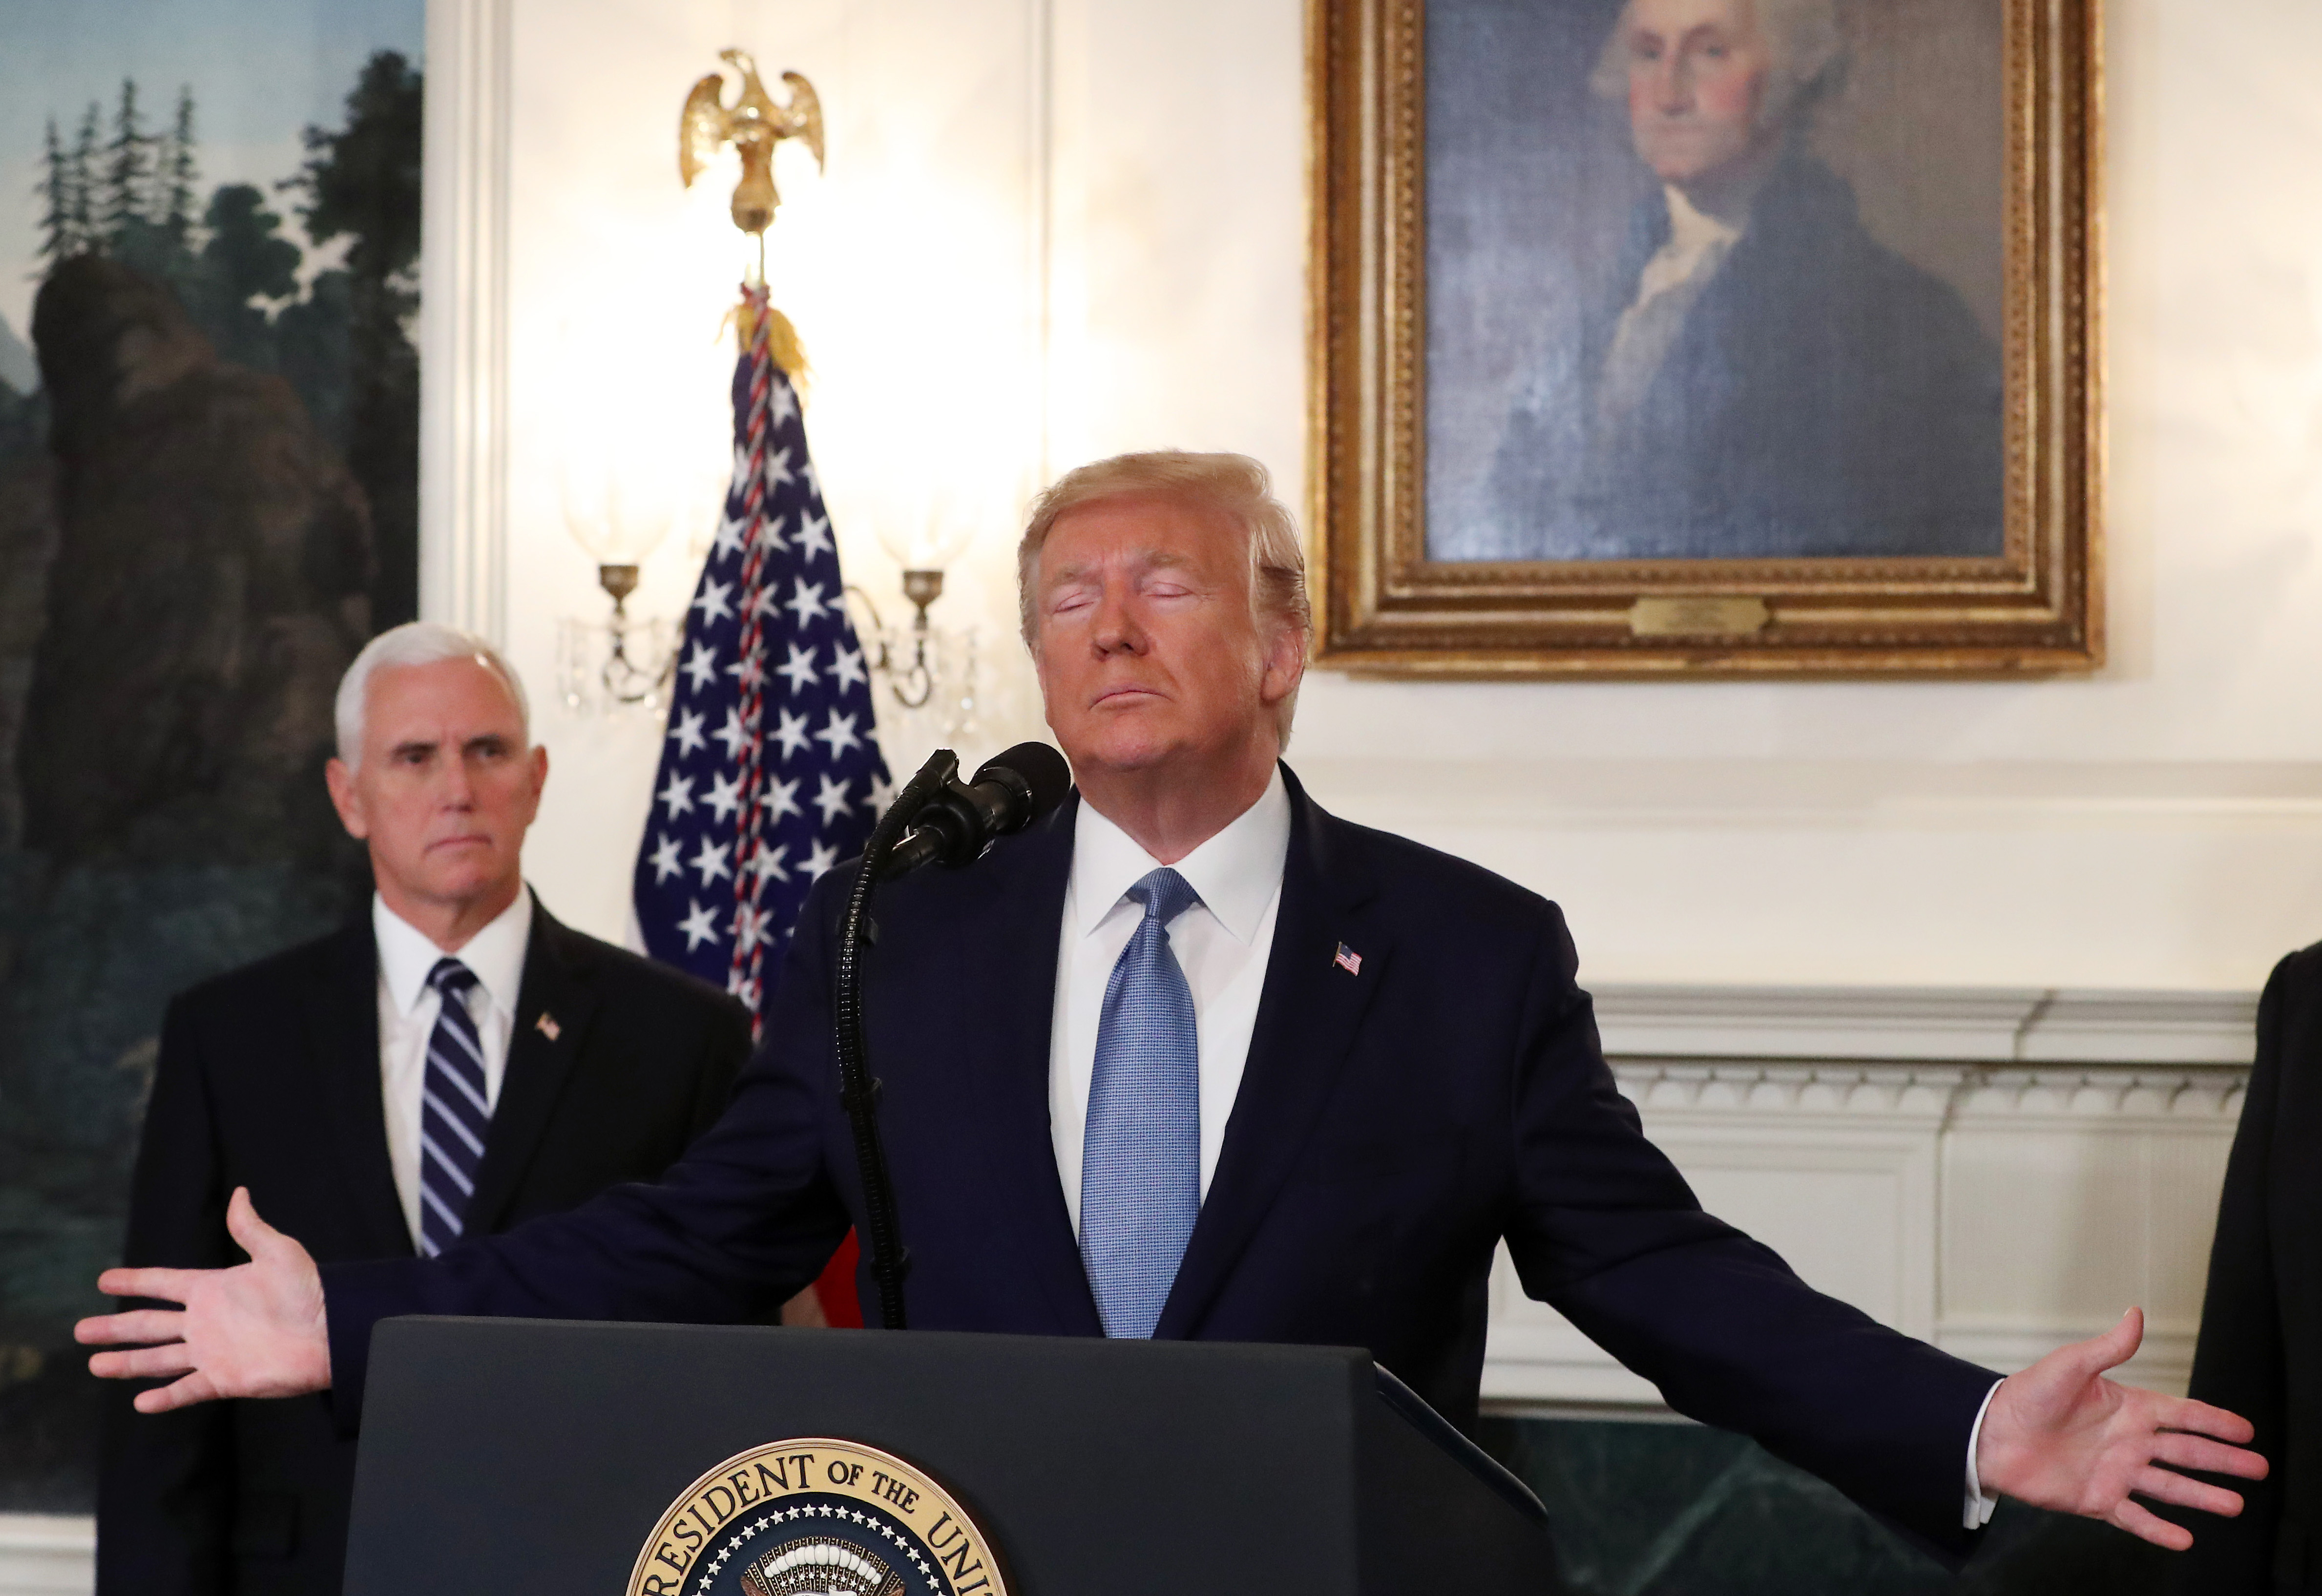 President Donald Trump stands with his eyes closed and his arms spread out at the podium with Vice President Mike Pence behind him at the White House.